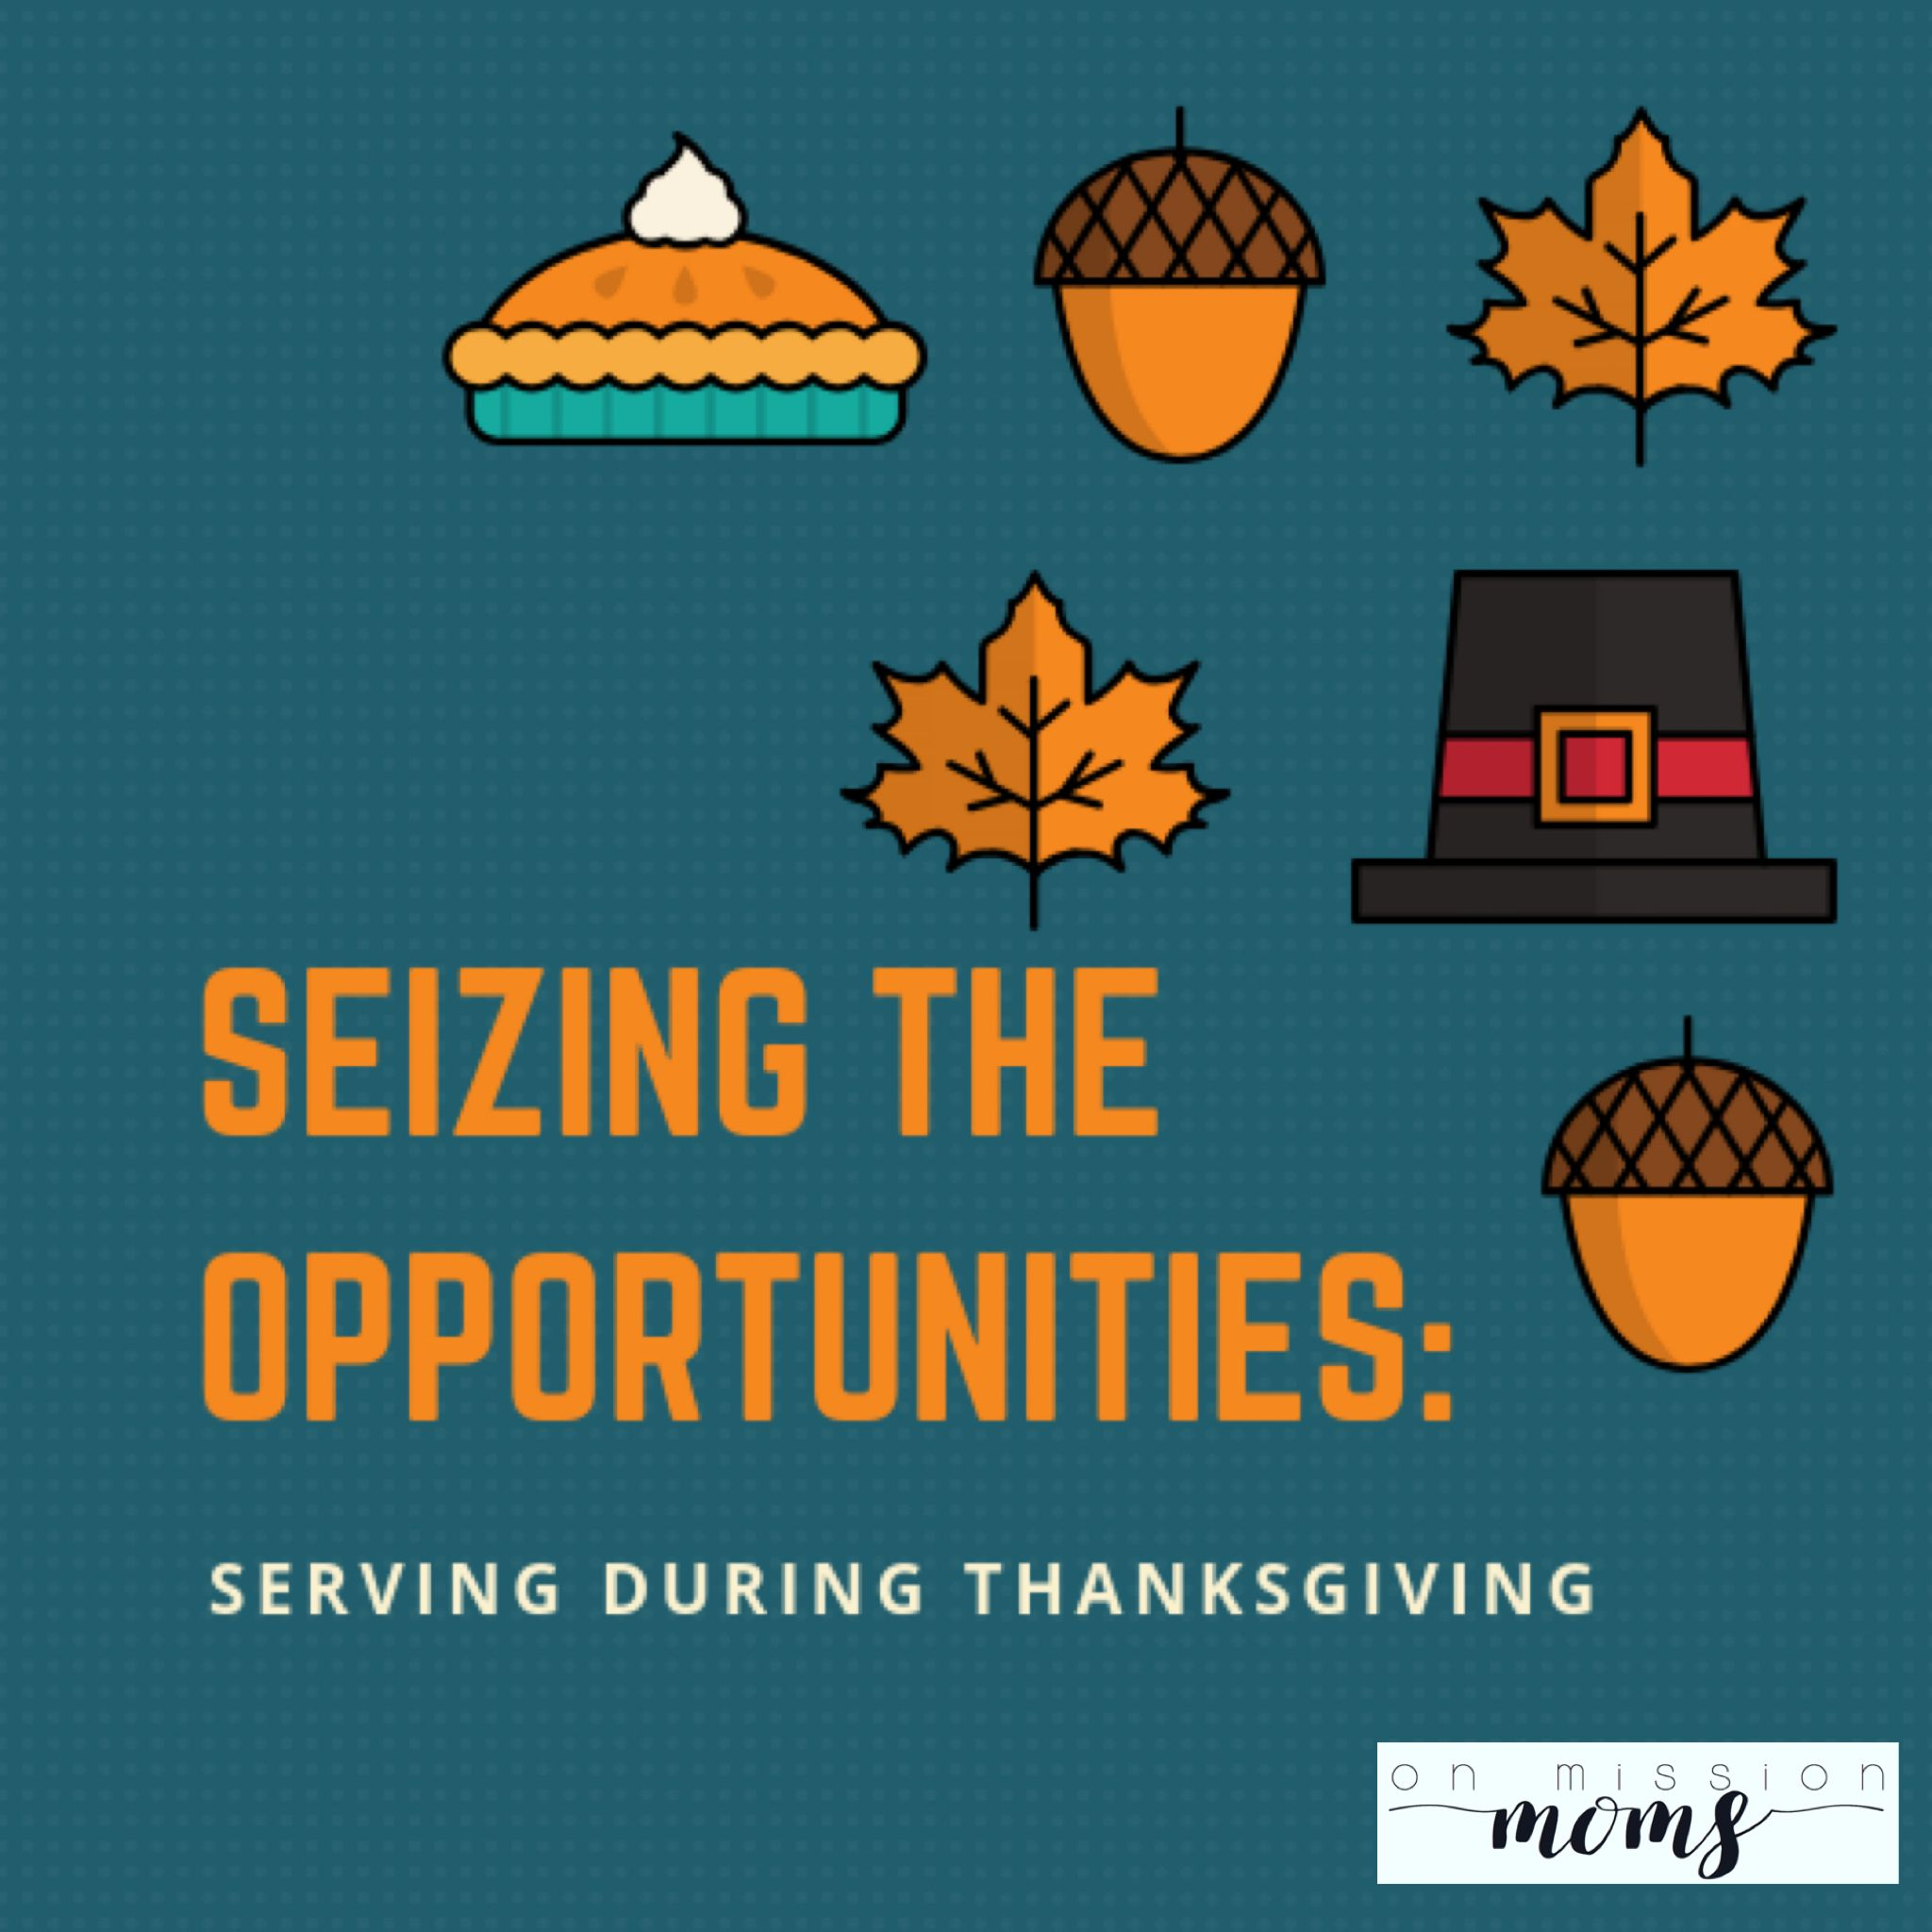 Seizing Opportunities Serving During The Holidays Health